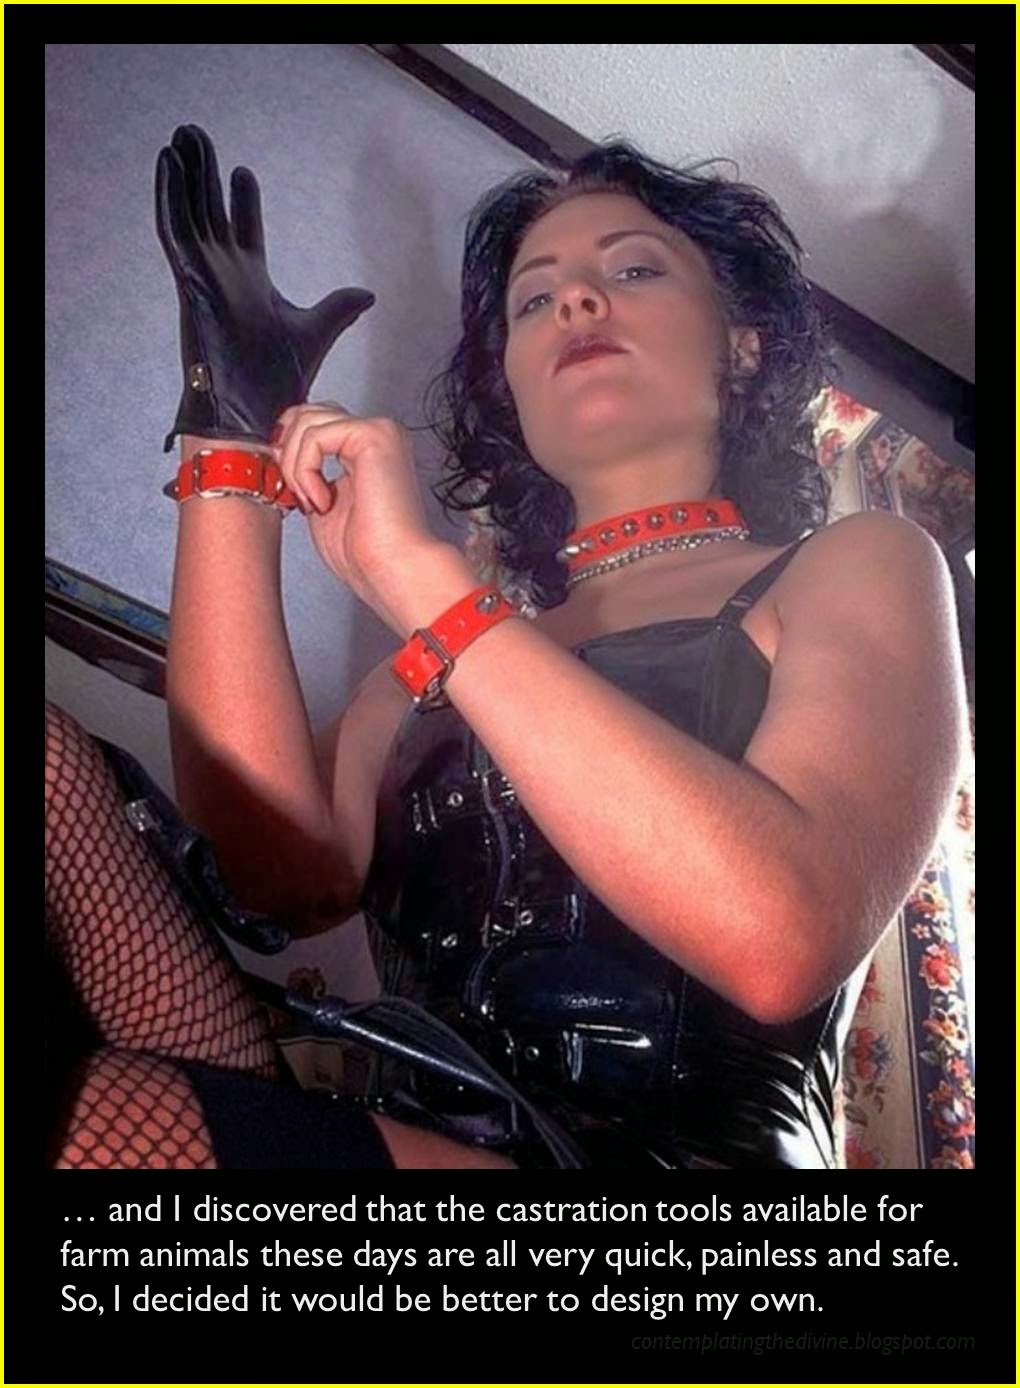 Castration at home